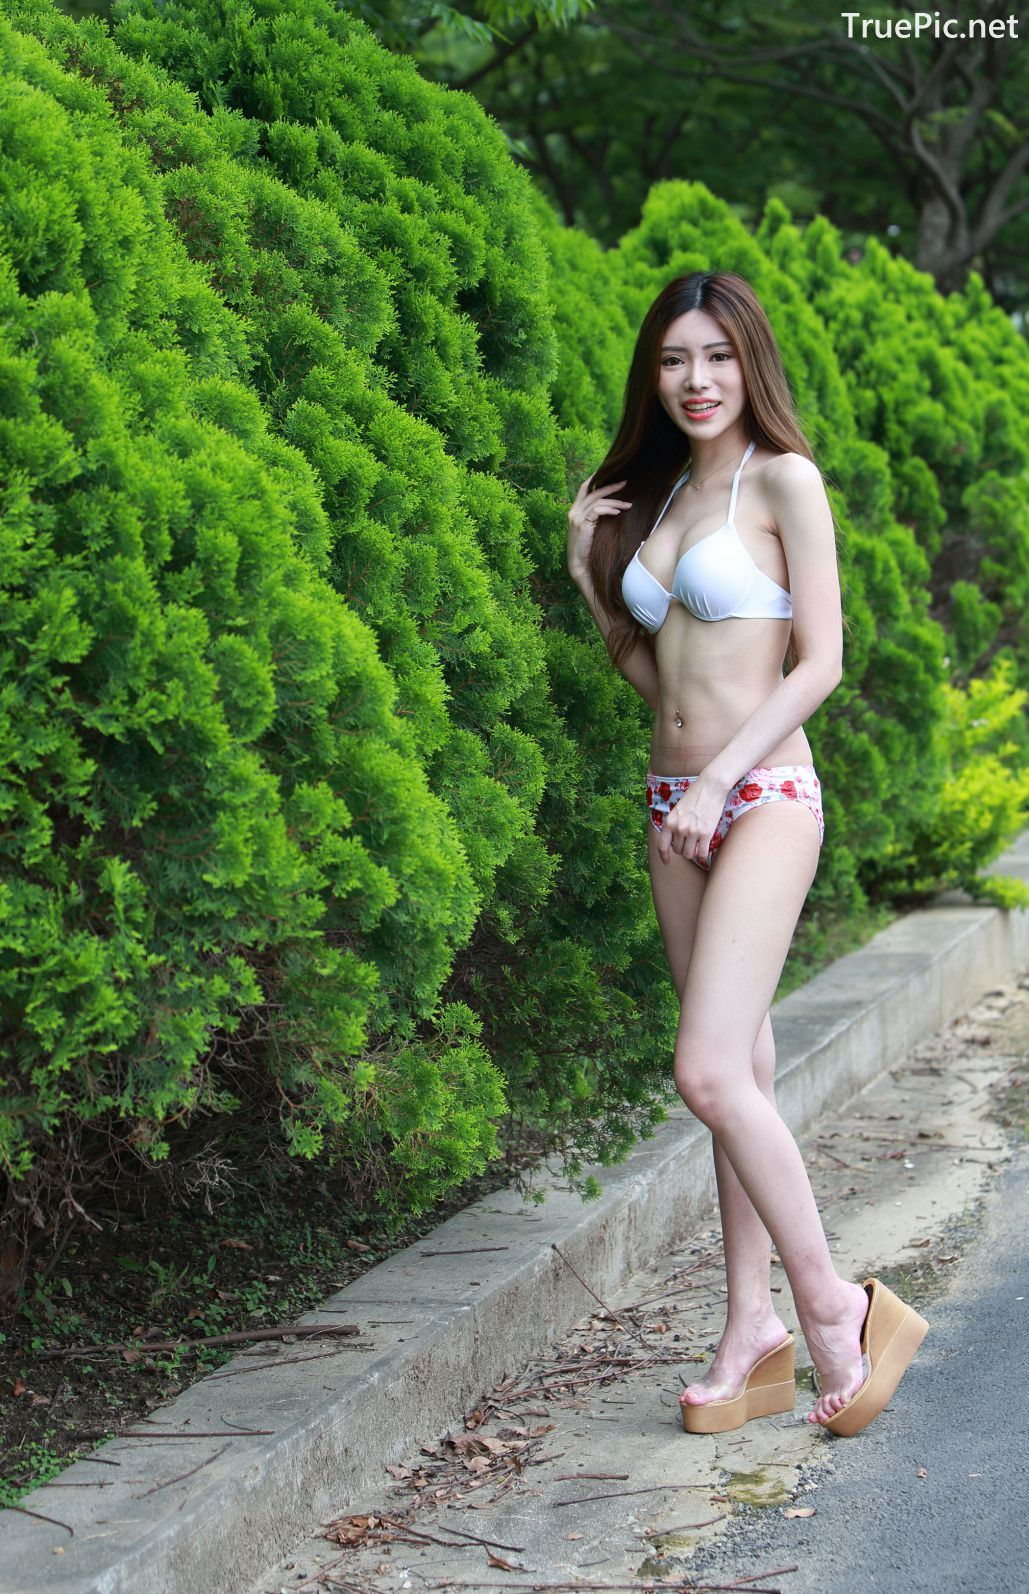 Image-Taiwanese-Model-承容-Lovely-And-Beautiful-Bikini-Baby-TruePic.net- Picture-4